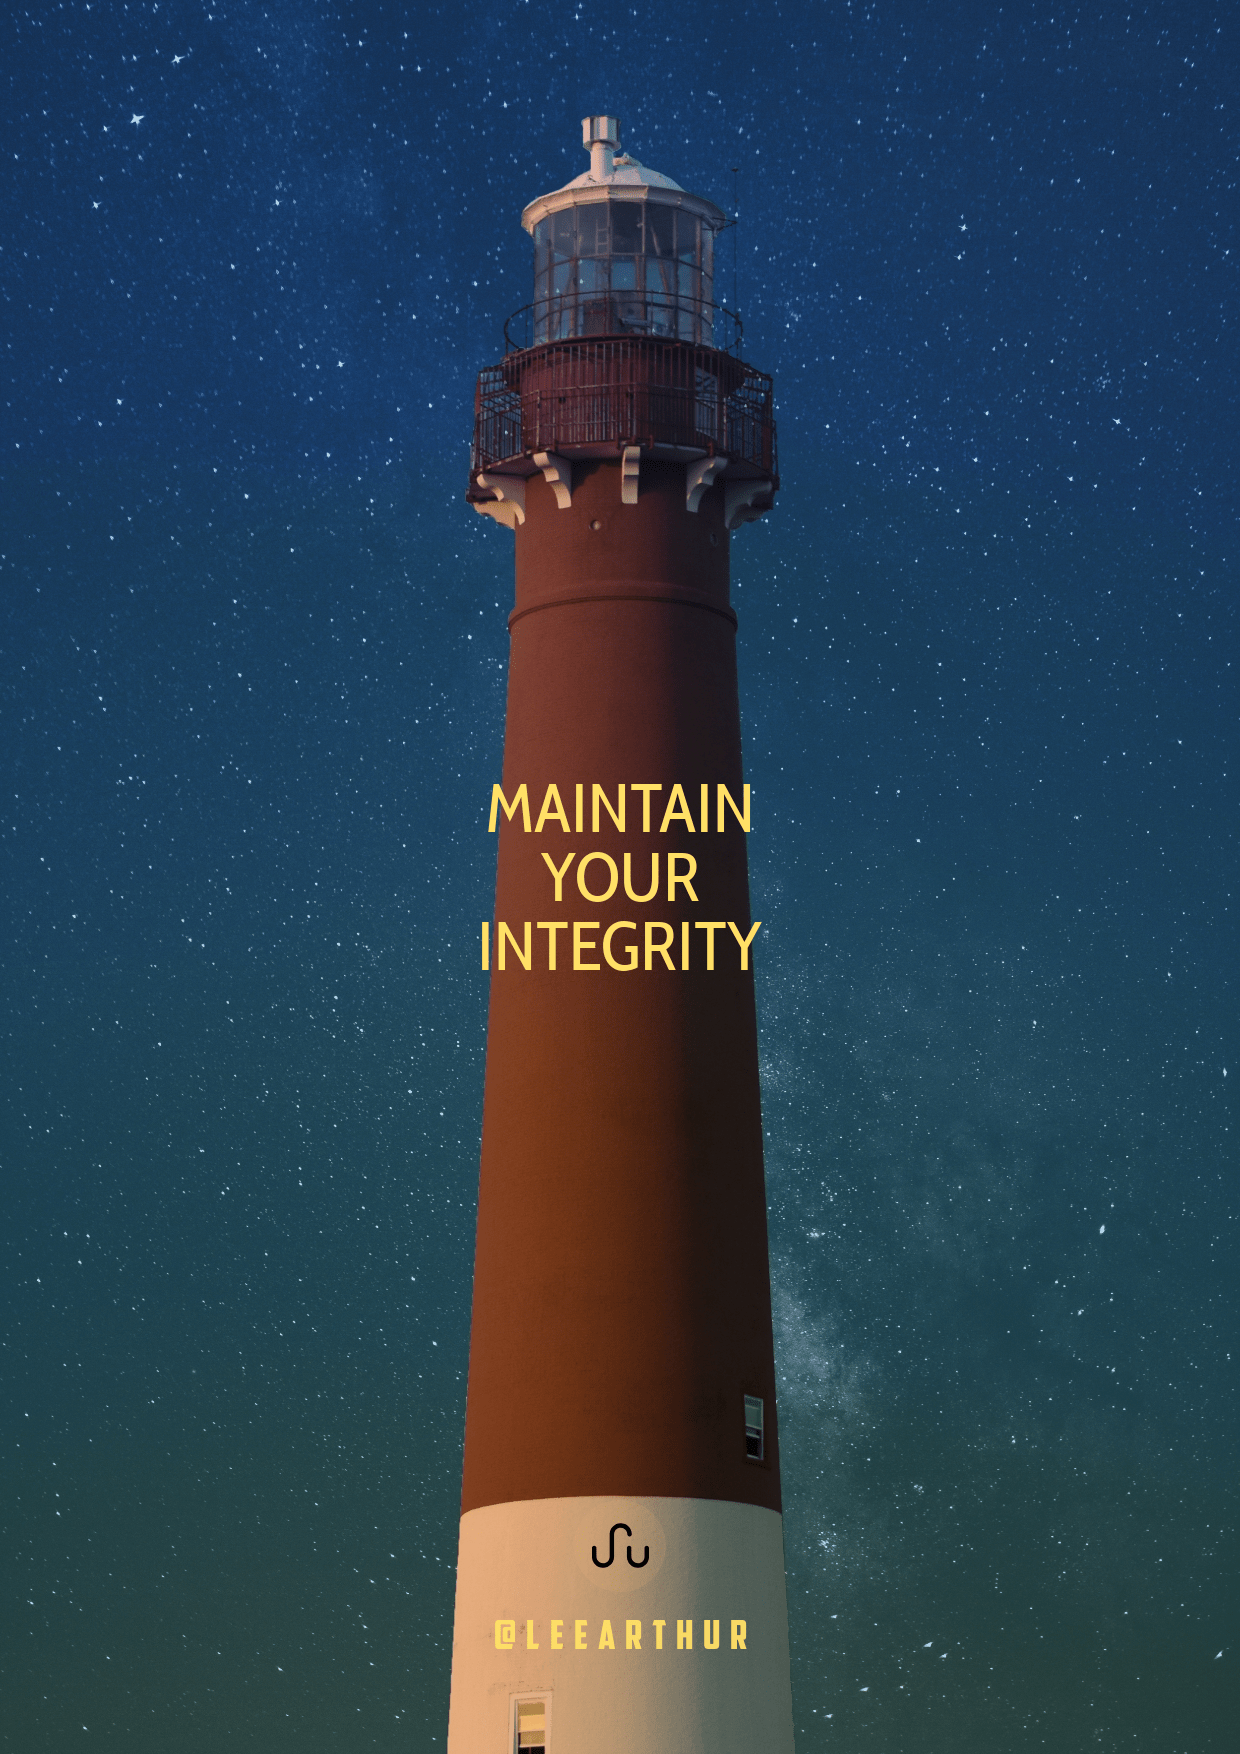 Lighthouse, Tower, Sky, Beacon, Atmosphere, Night, Network, Circle, Web, Button, Adding, Page, Website,  Free Image